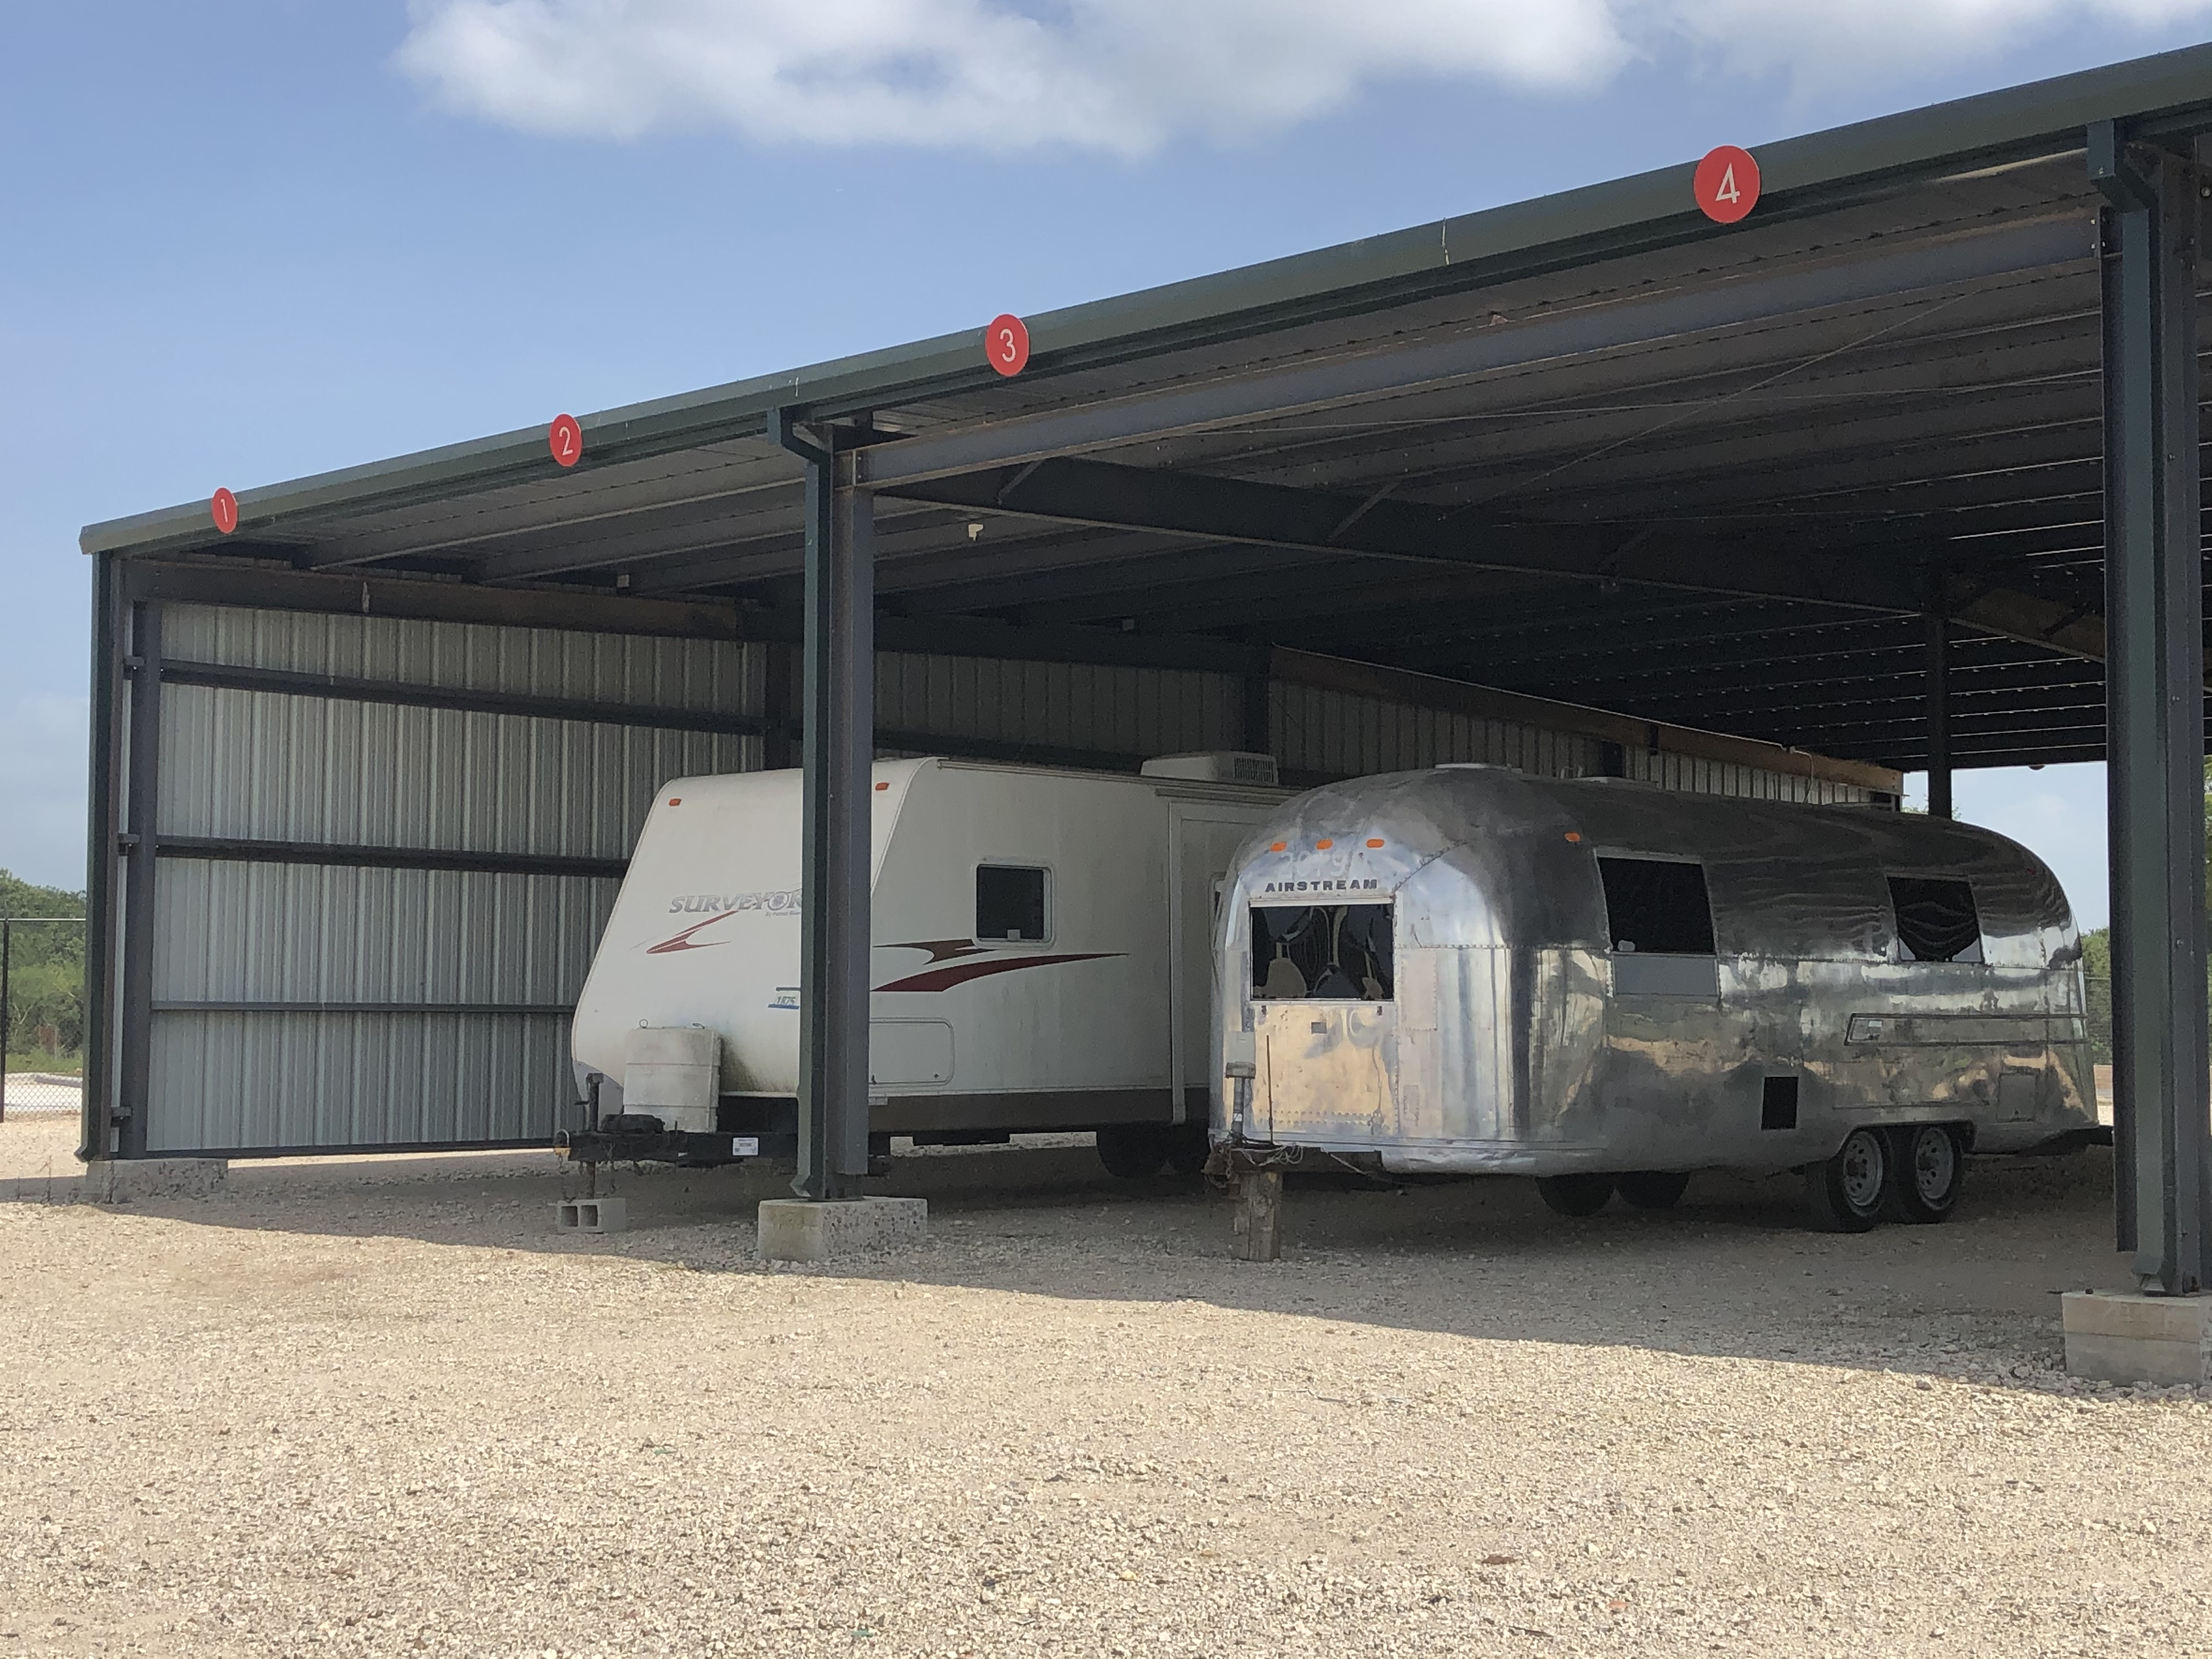 Covered rv parking in Sealy, TX